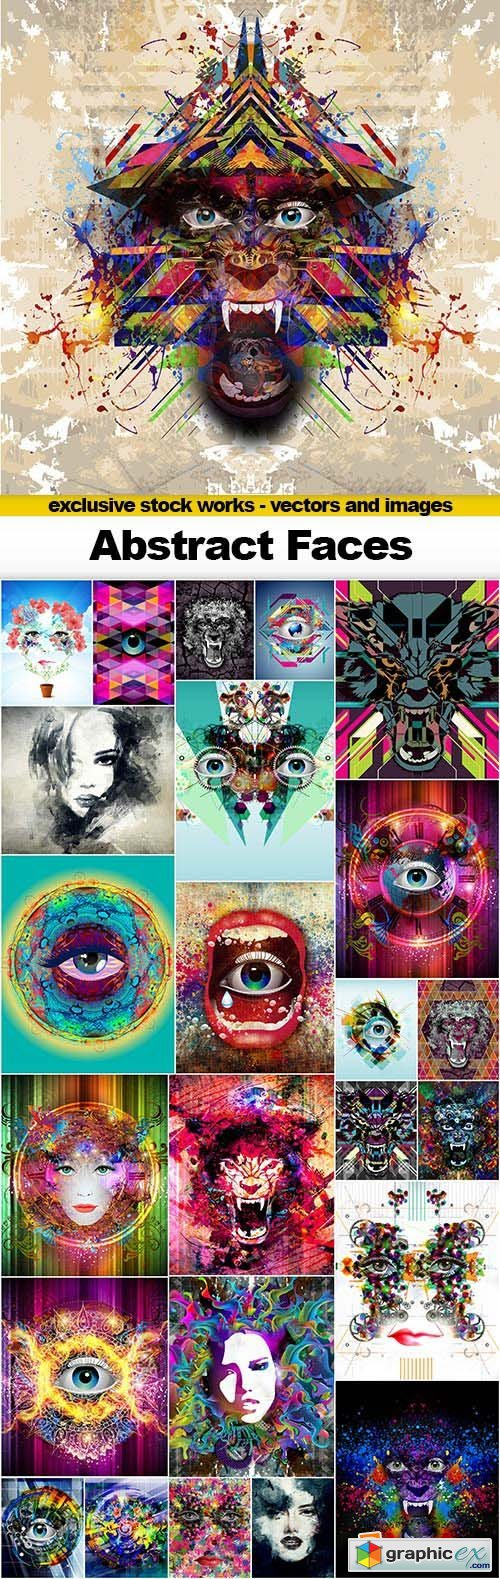 Abstract Faces - 25x JPEGs